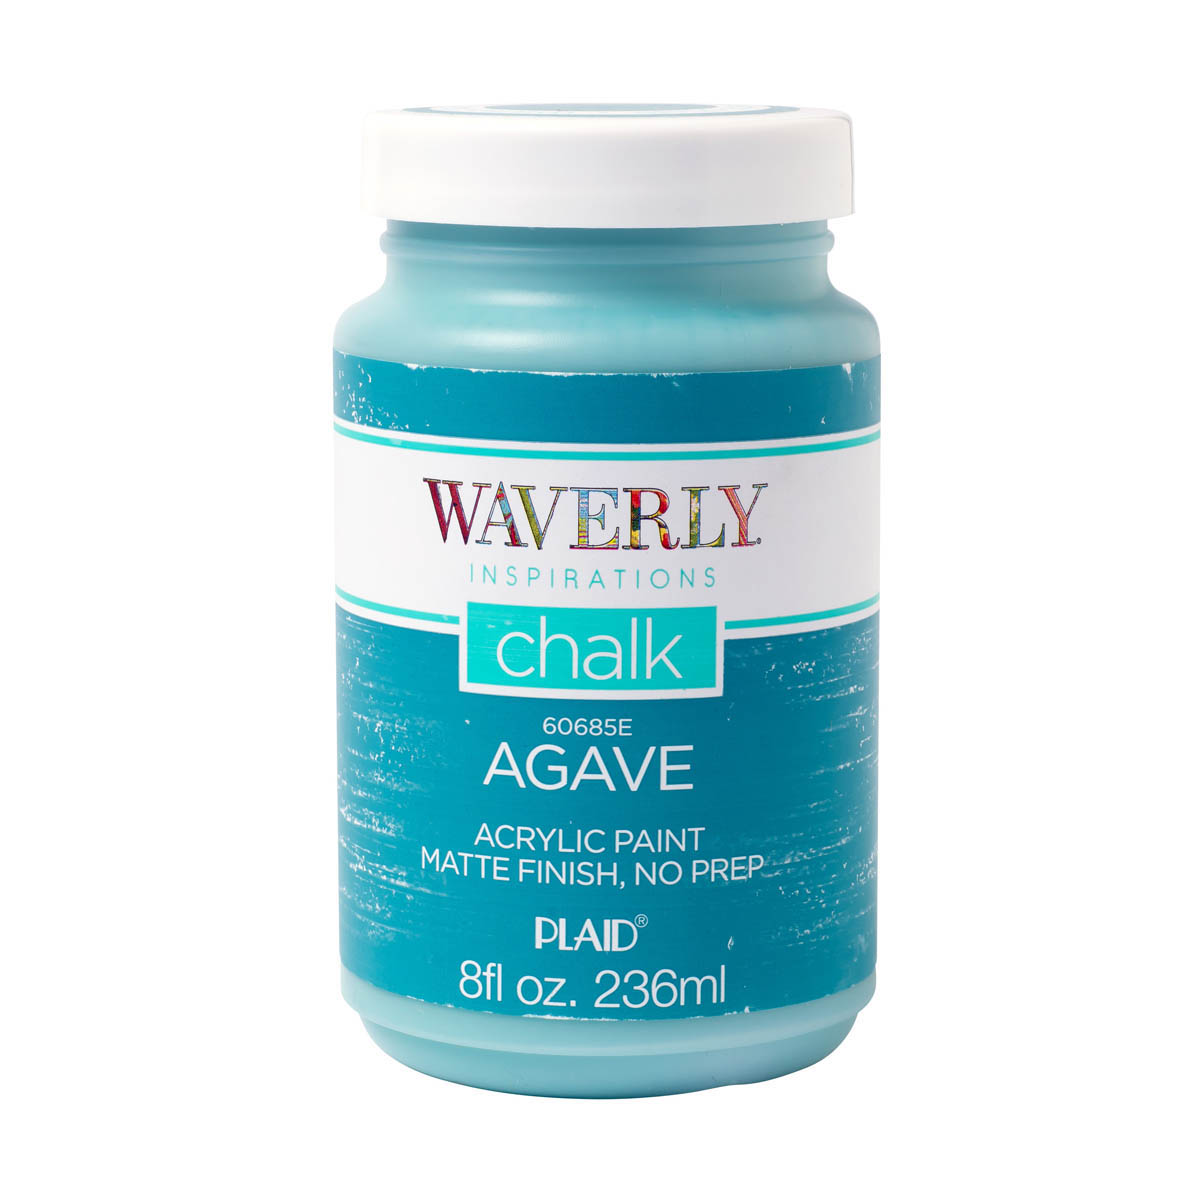 Waverly ® Inspirations Chalk Acrylic Paint - Agave, 8 oz. - 60685E